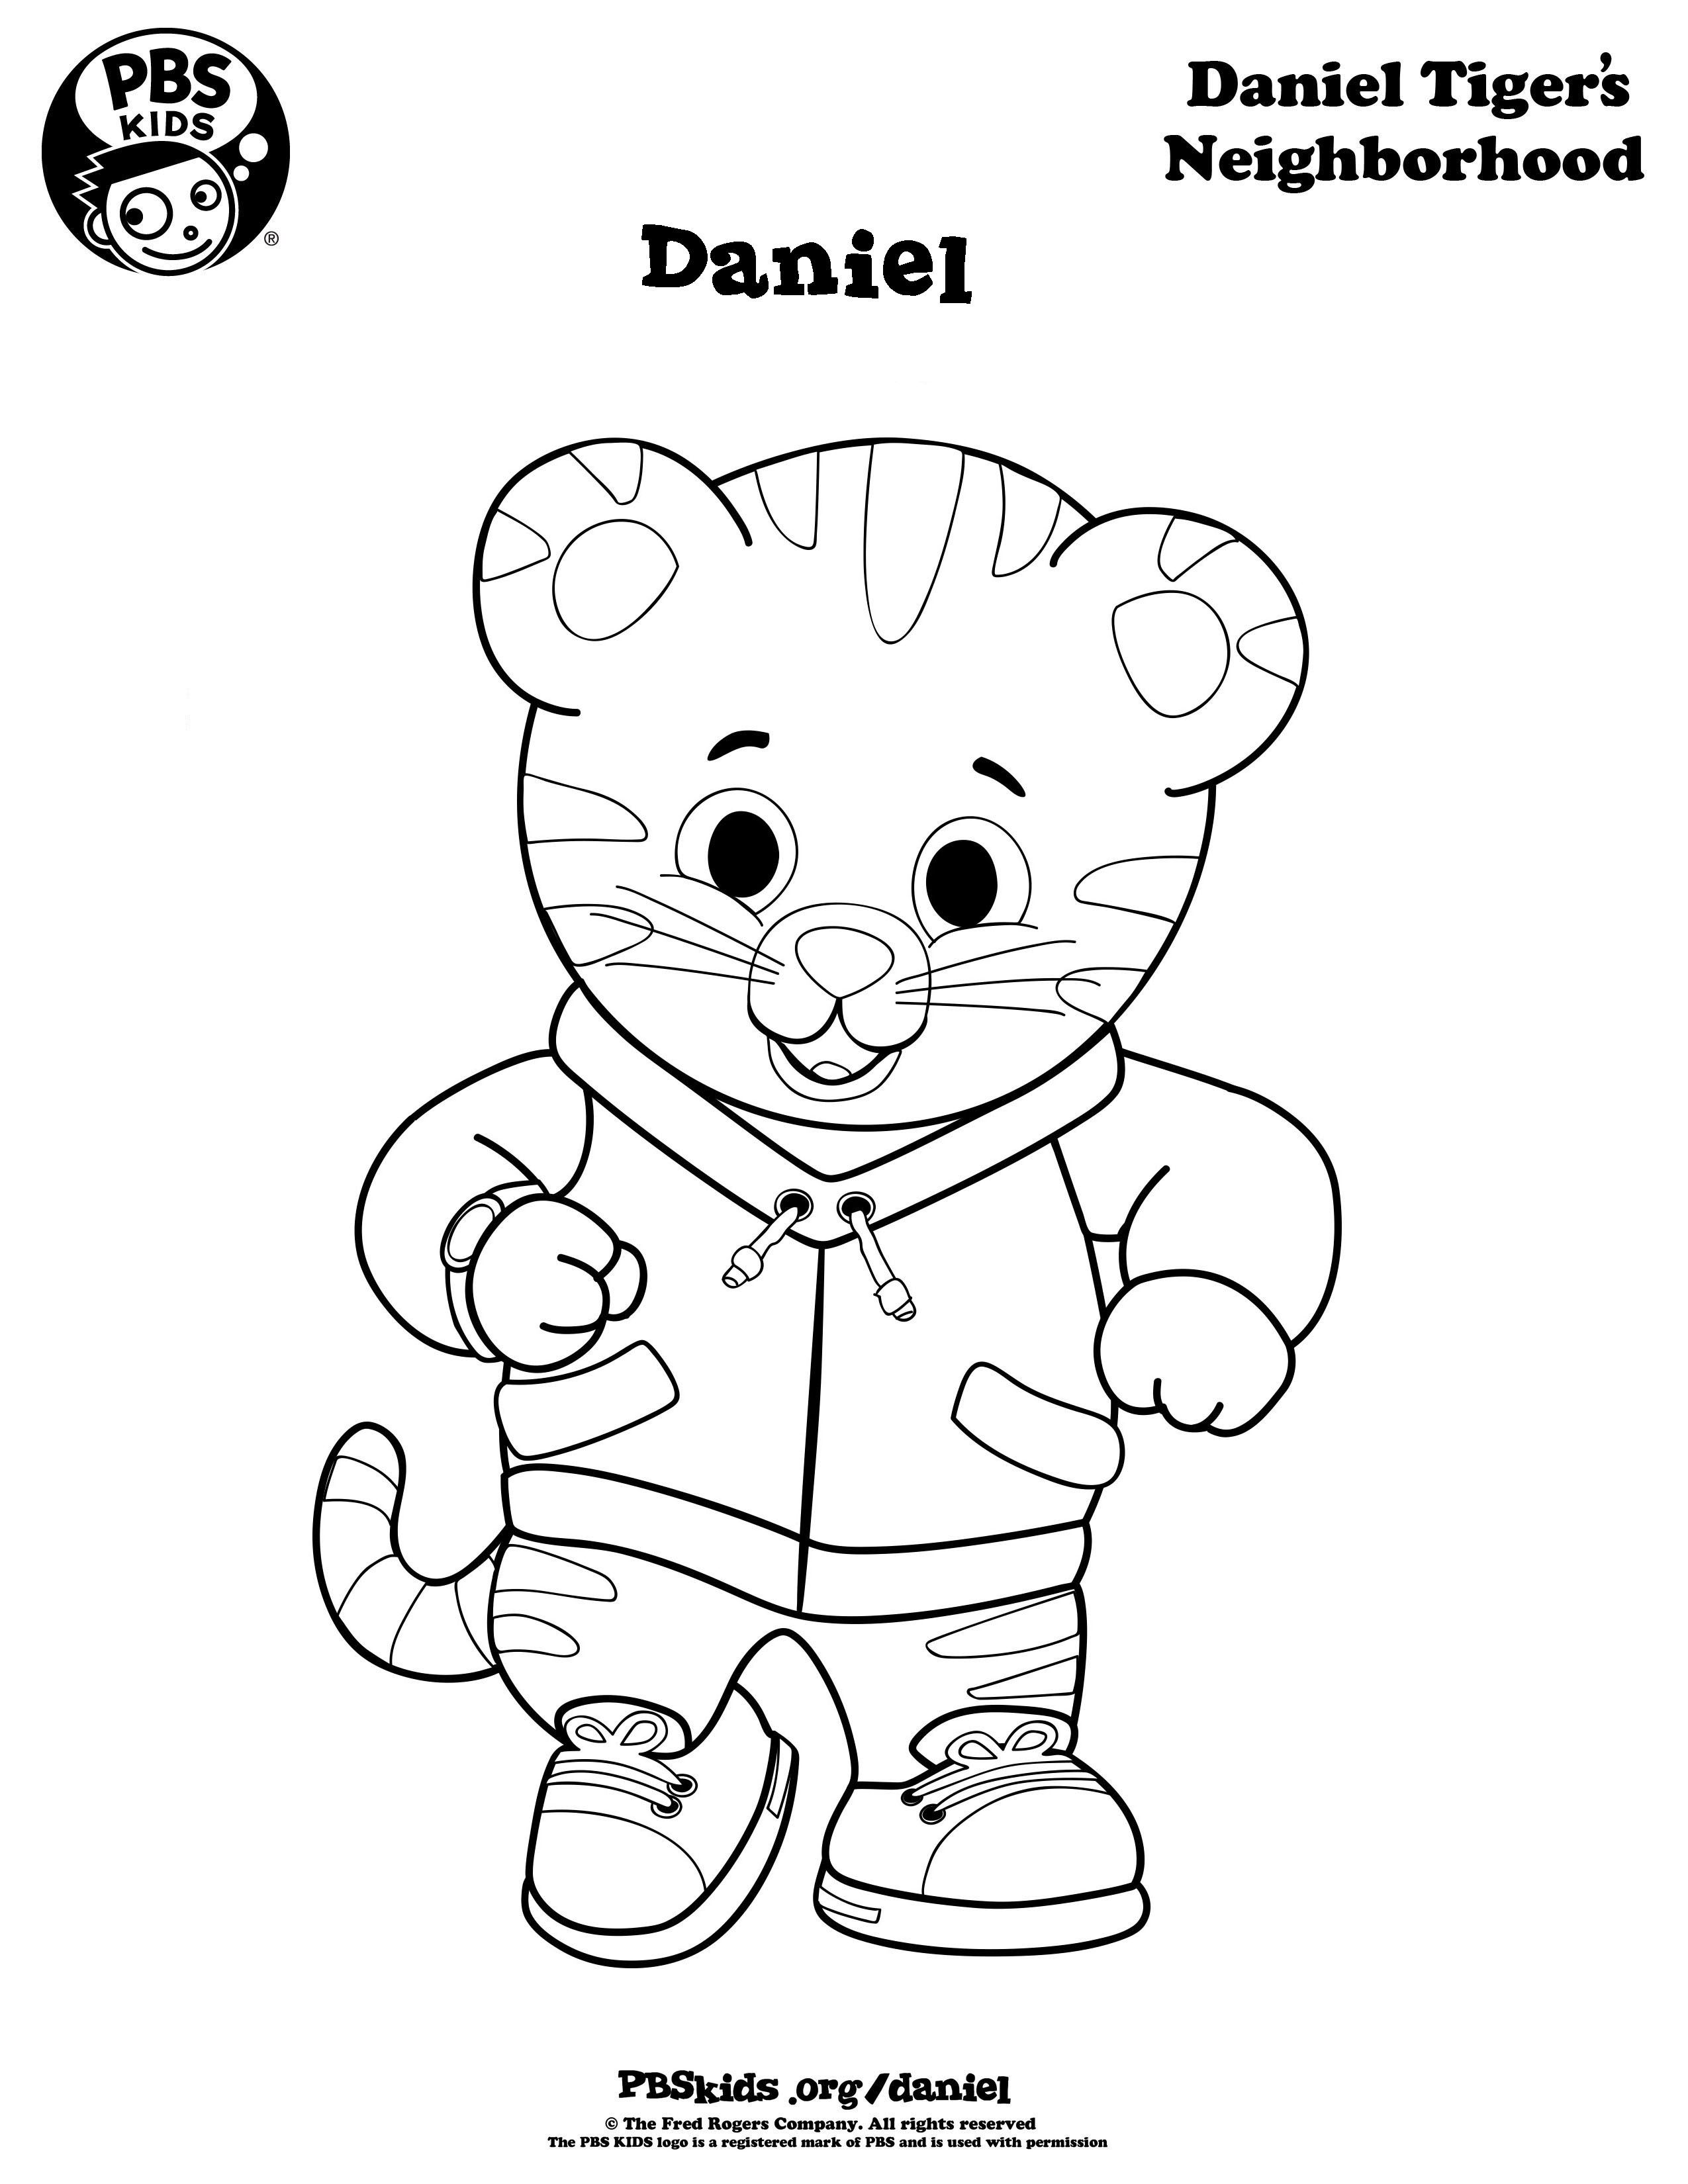 cyberchase coloring pages parents also 5d184c88c5a547488a3159f95f2005ad further daniel tiger coloring pages 6 together with Printables trolleyWithkids moreover 5ecf493dfcdc937320d70608ce16743f also Daniel Tiger Coloring Page 7 besides dT7jL6Arc further dT8x6Xr6c in addition niEyyR7dT together with aceRyReni moreover daniel tiger coloring pages printable 4a56l. on daniel the tiger coloring pages for kids